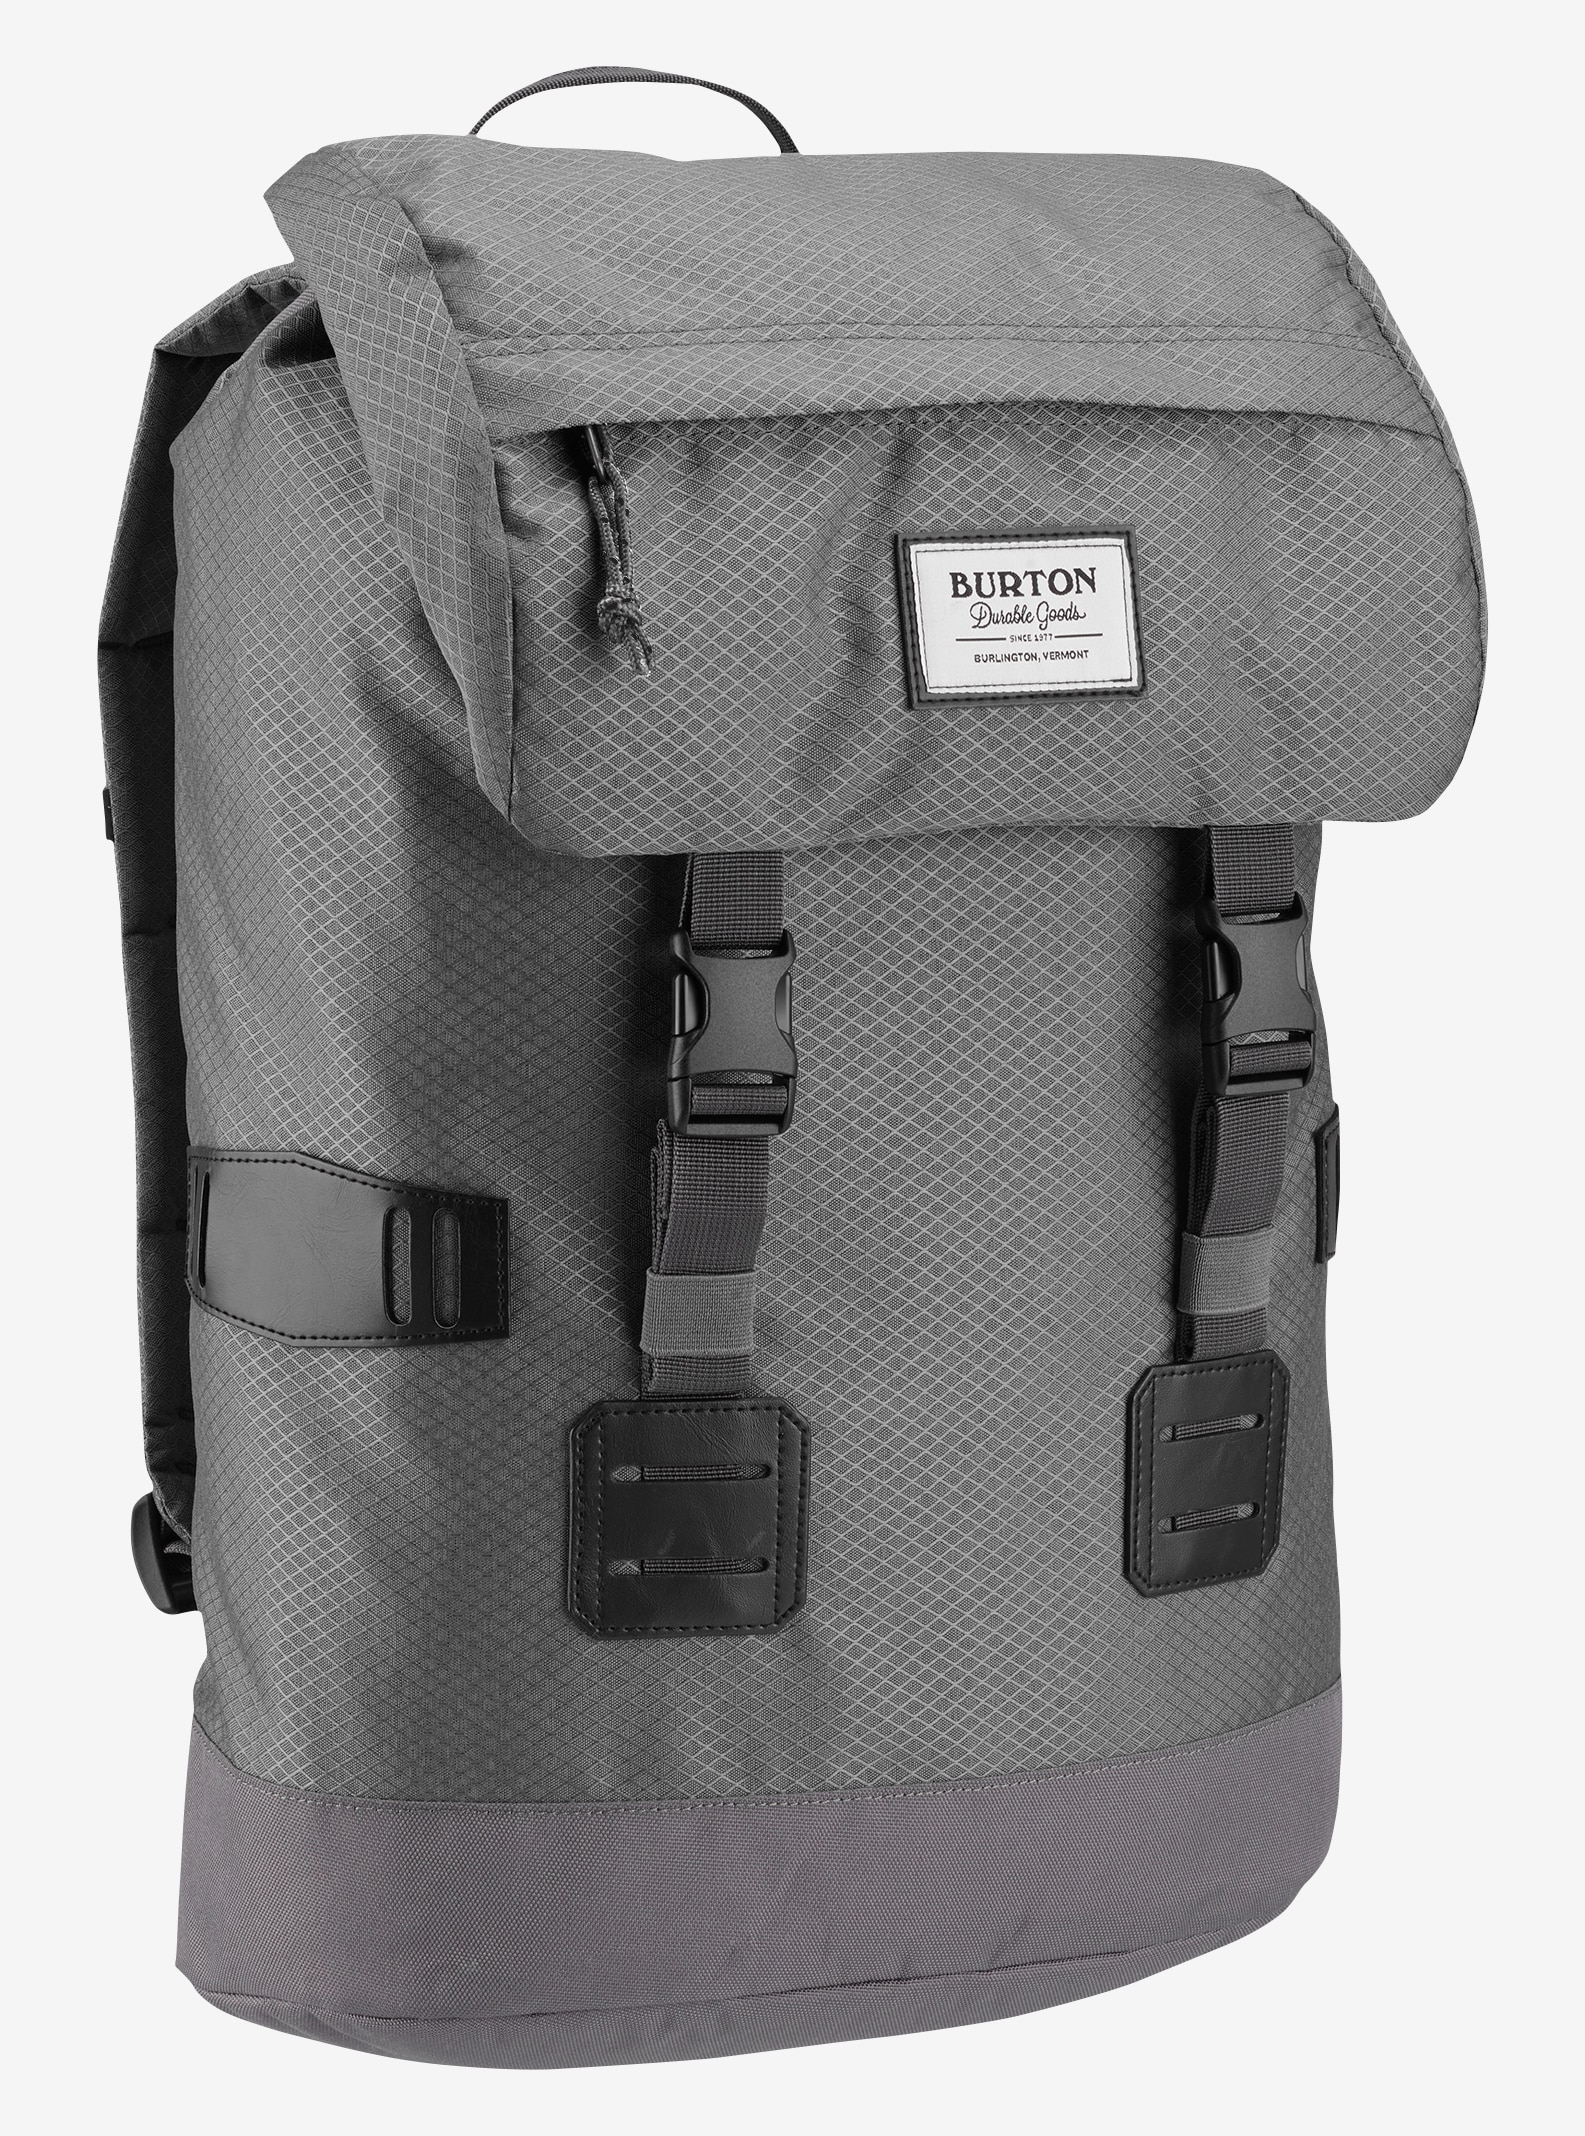 Burton Tinder Backpack shown in Faded Diamond Ripstop